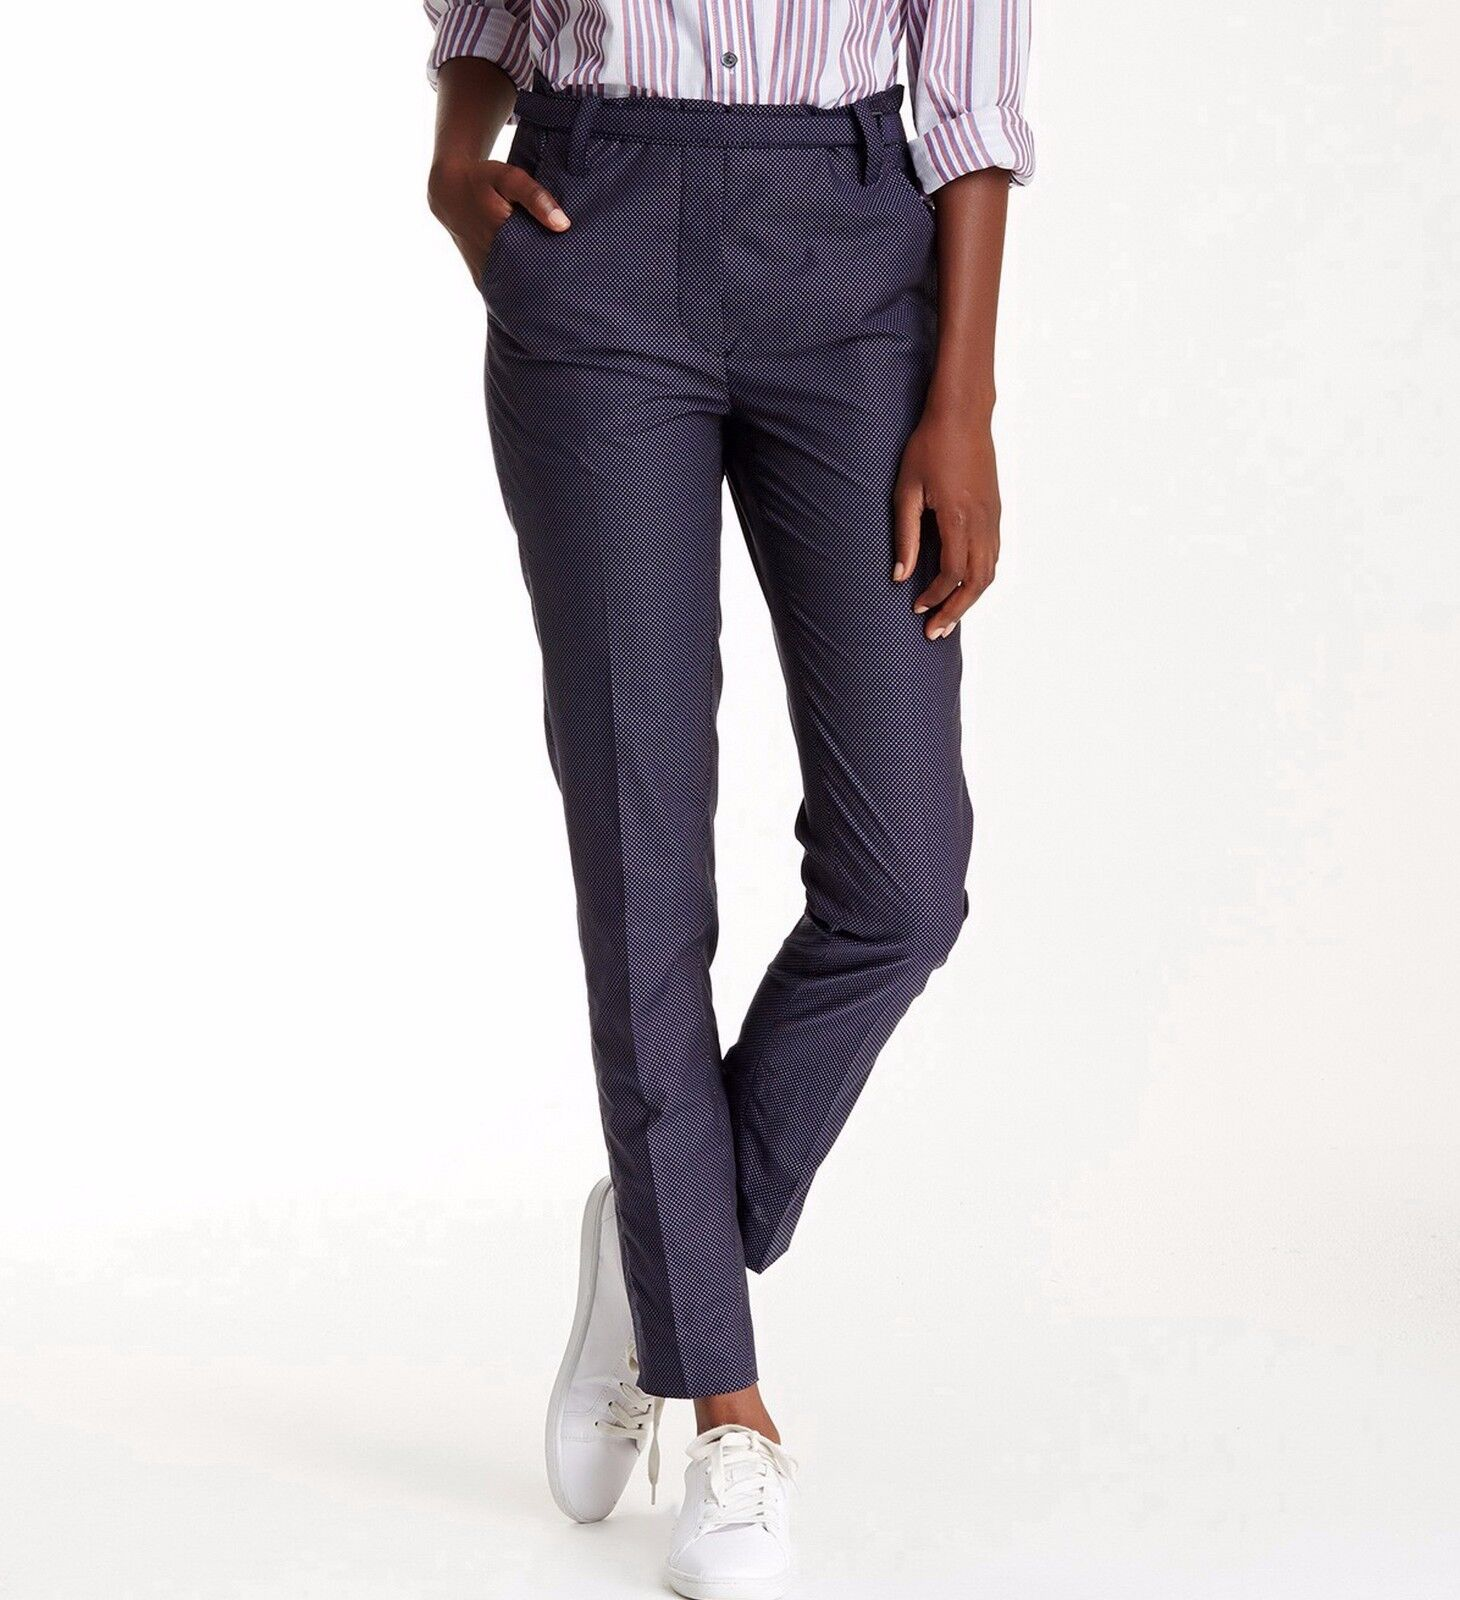 NWT Equipment Carla Dotted Slim Pants, Navy w White Dot, size 2,  198